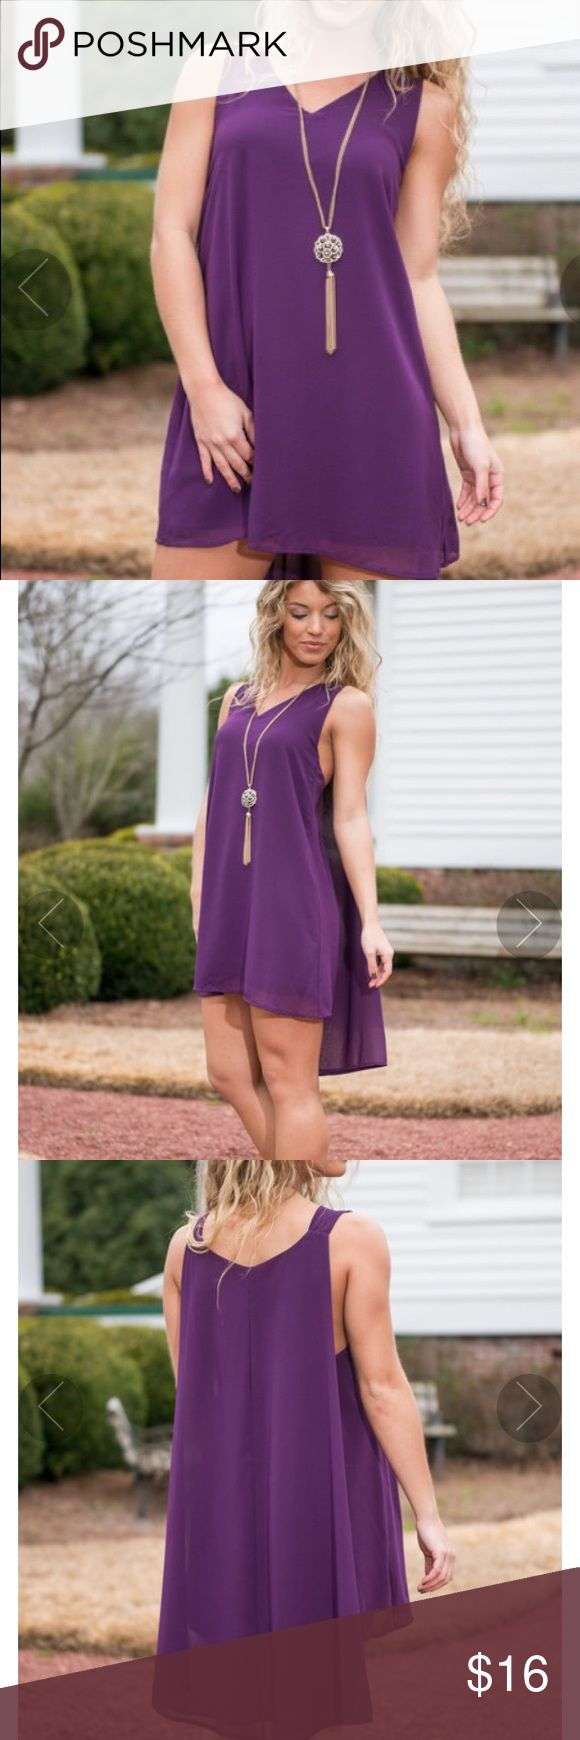 Mint Julep Boutique Plum Dress The extra fabric this dress has in the back creates fabulous movement! It lightly flows behind you as you walk or the wind blows! Only worn once during sorority recruitment! Mint Julep Dresses